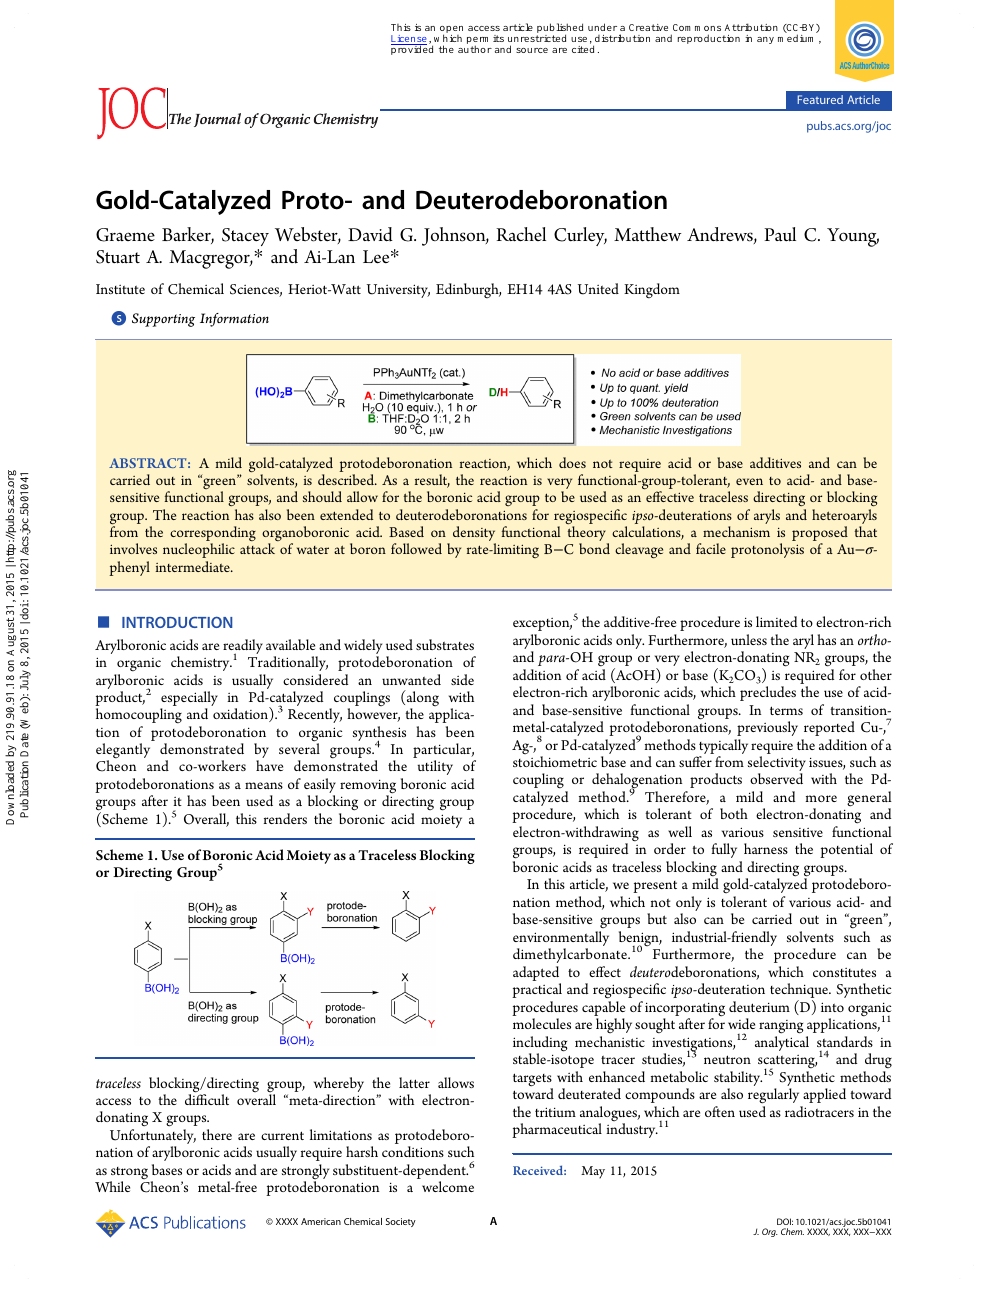 Gold-Catalyzed Proto- and Deuterodeboronation – topic of